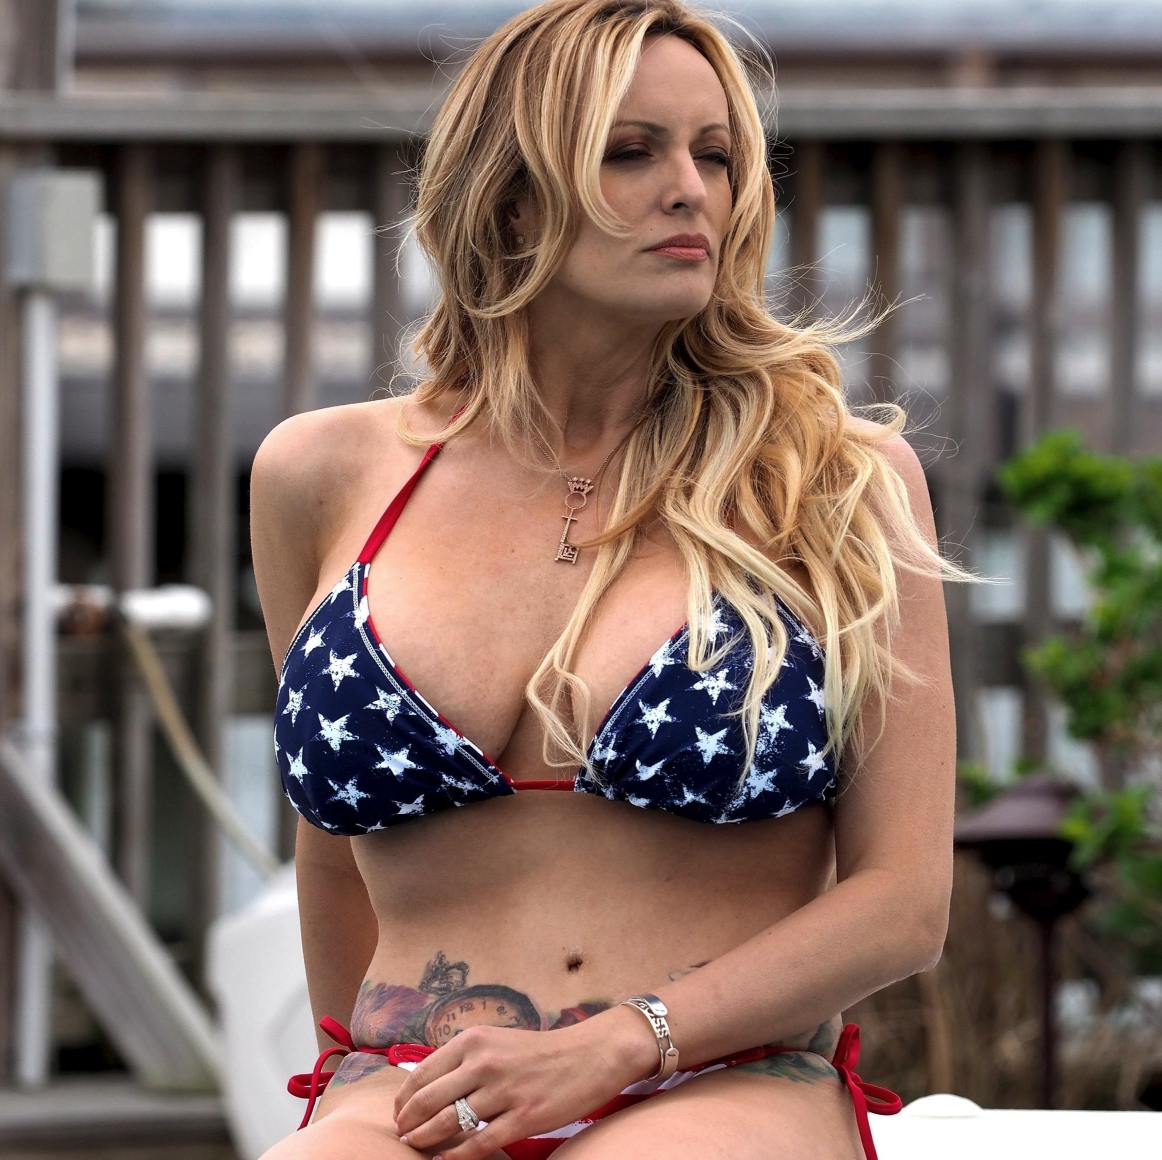 Stormy Daniels Shows Her Busty Cleavage in Stars and Stripes Bikini [SFW PICS]